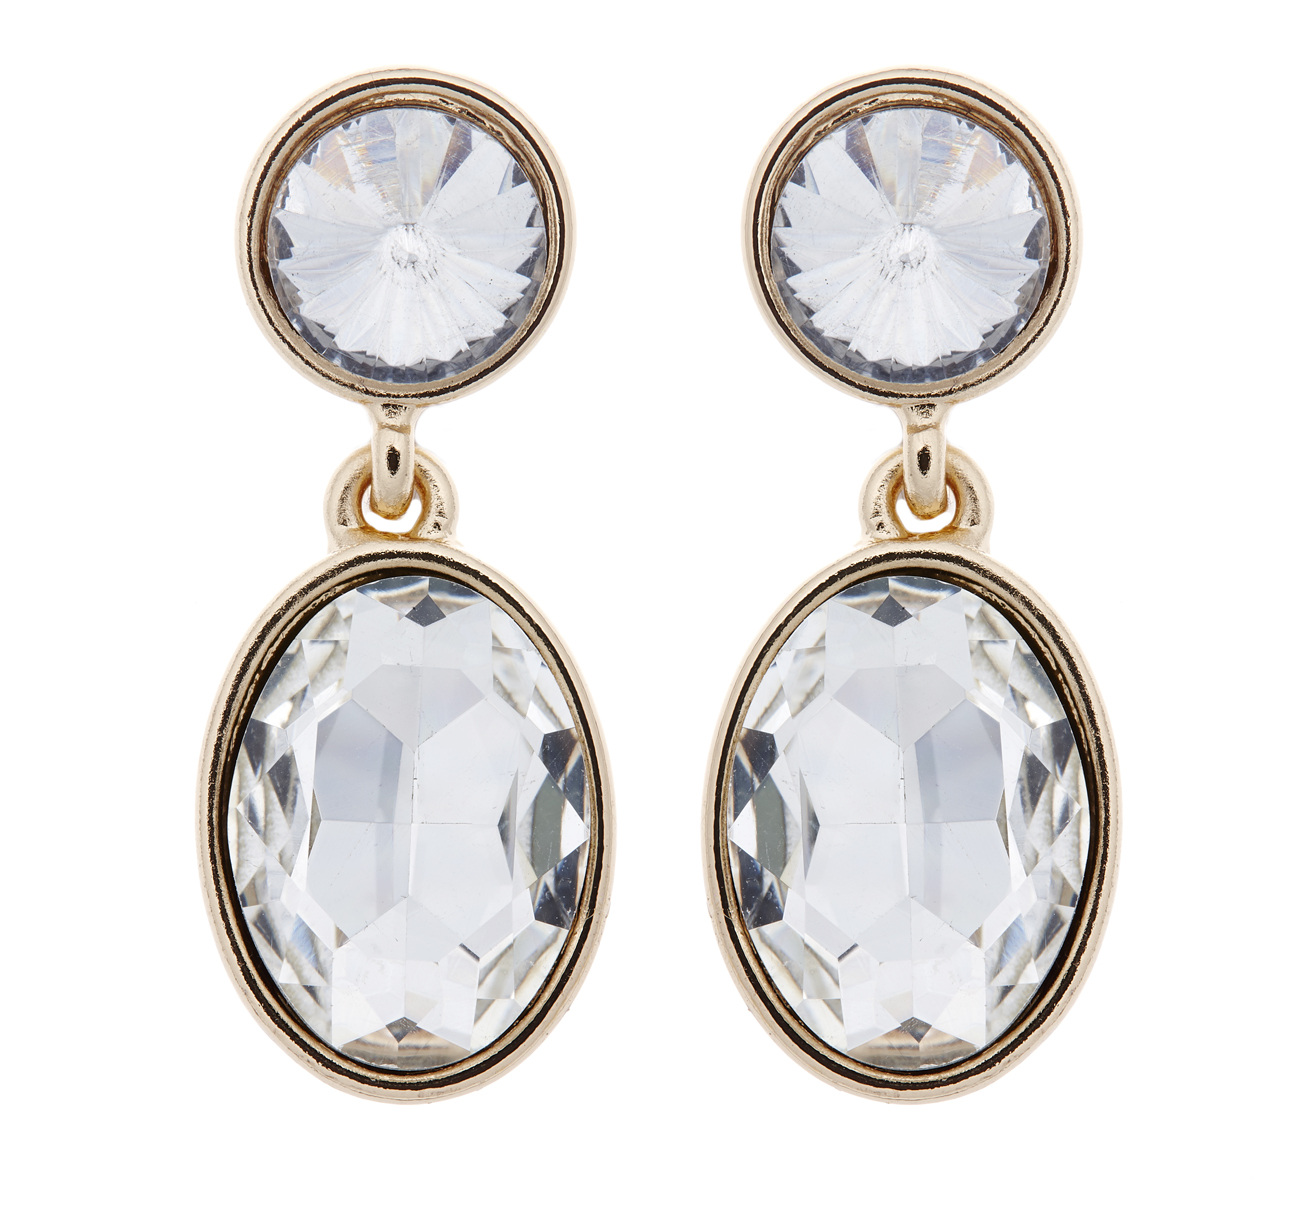 Clip On Earrings - Maddy C - gold drop earring with clear crystals